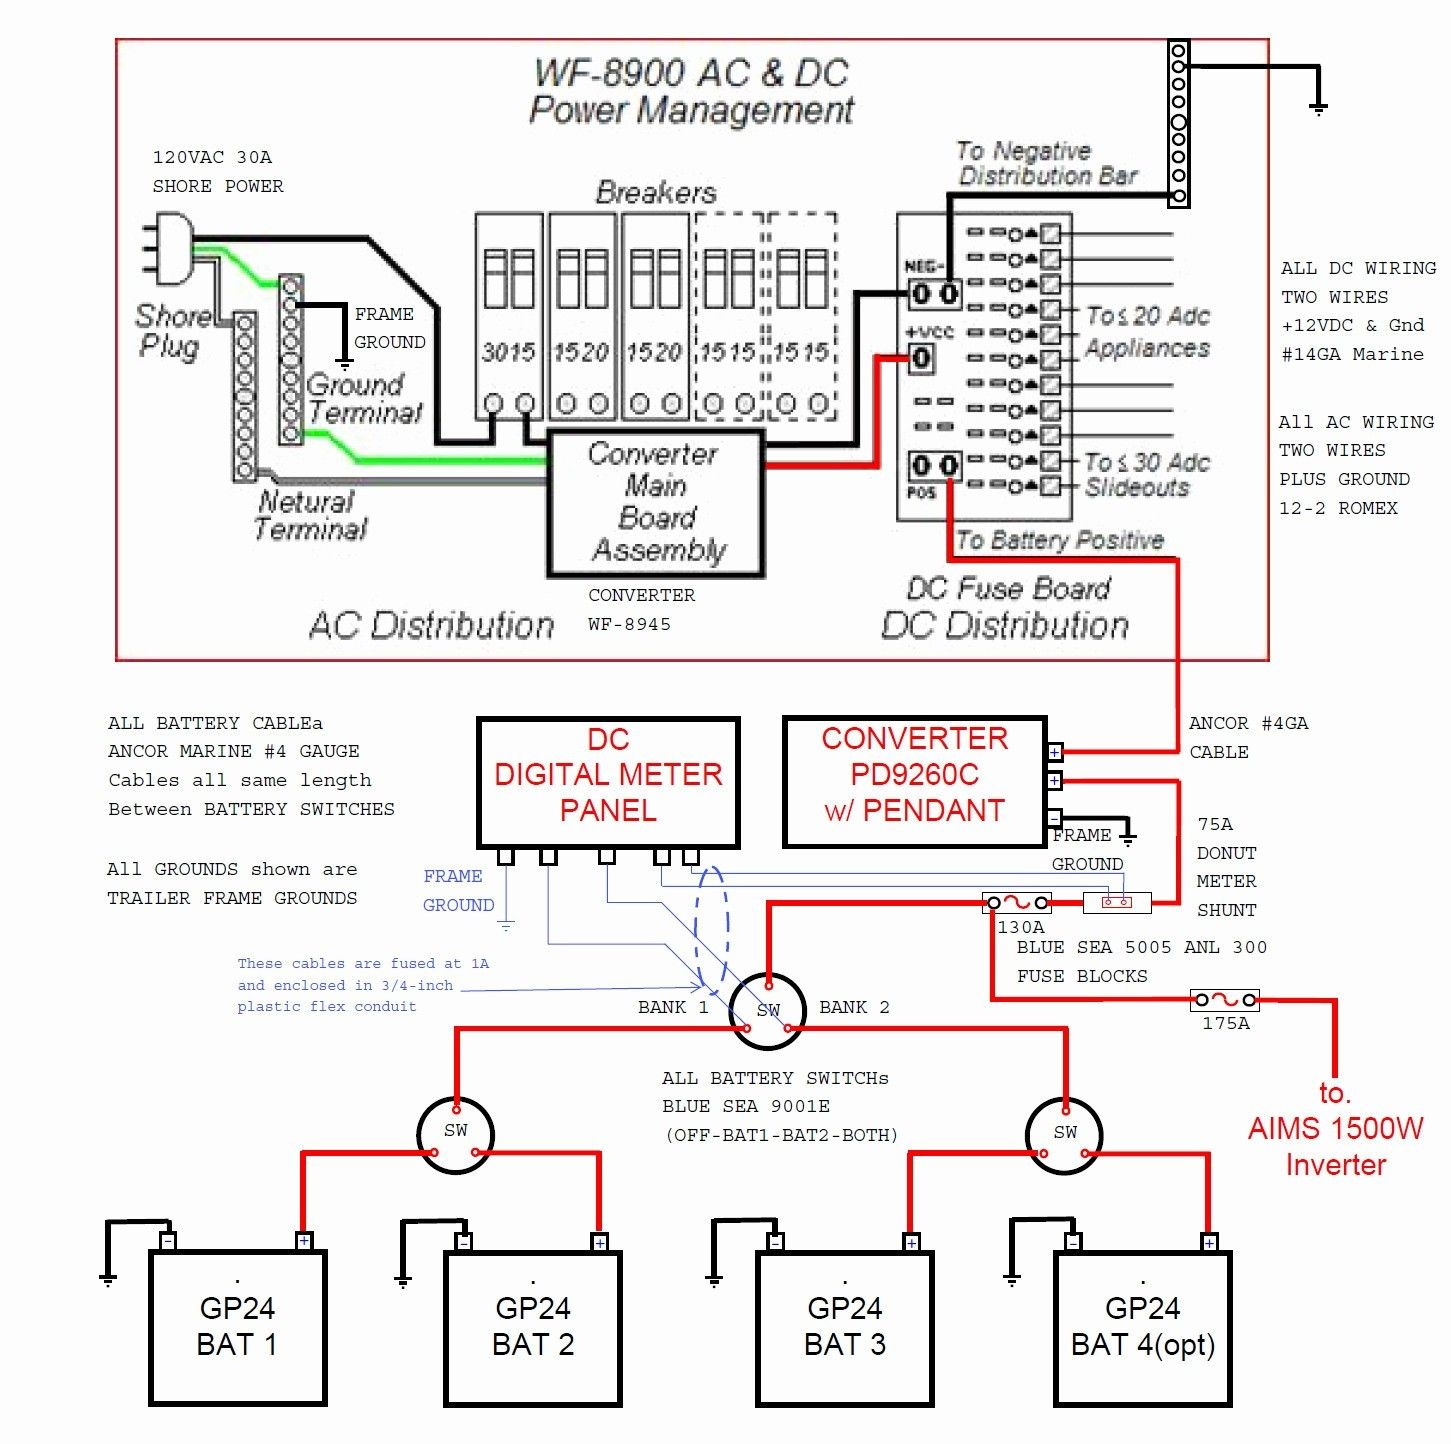 30 amp rv plug wiring diagram inspirational wiring diagram for rv wiring caravan inverter [ 1451 x 1444 Pixel ]